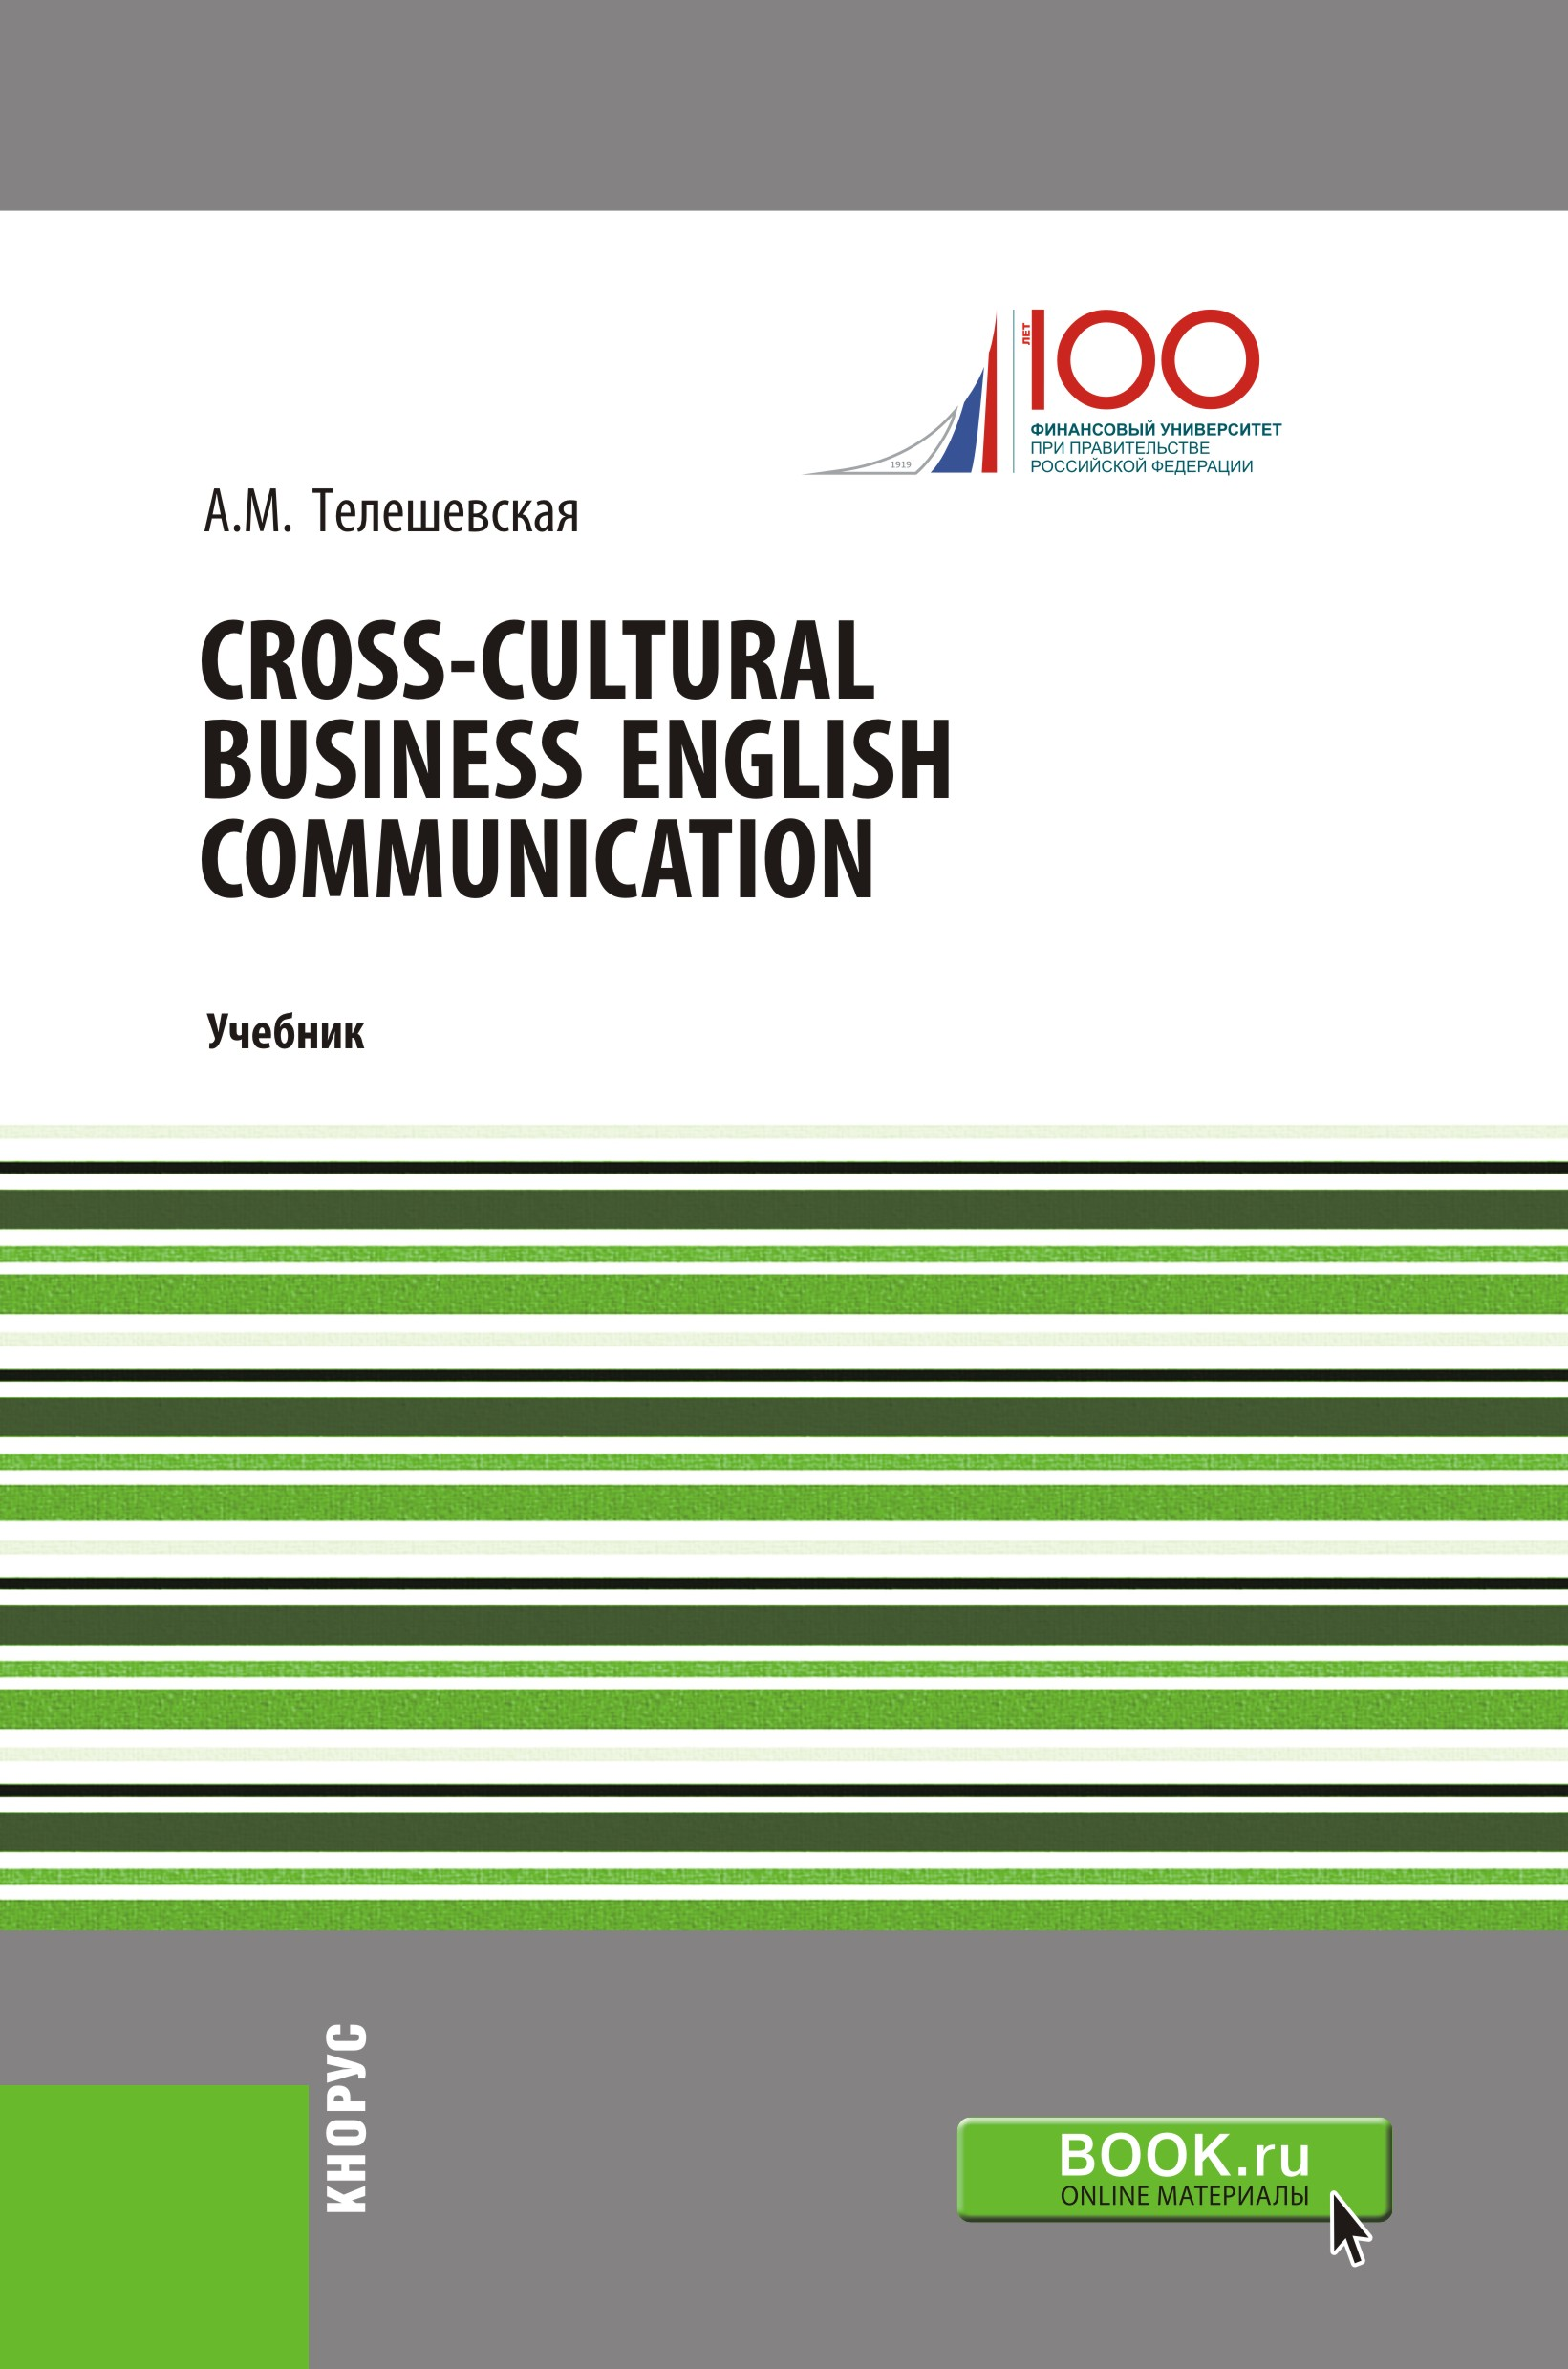 Cross-cultural Business English Communication